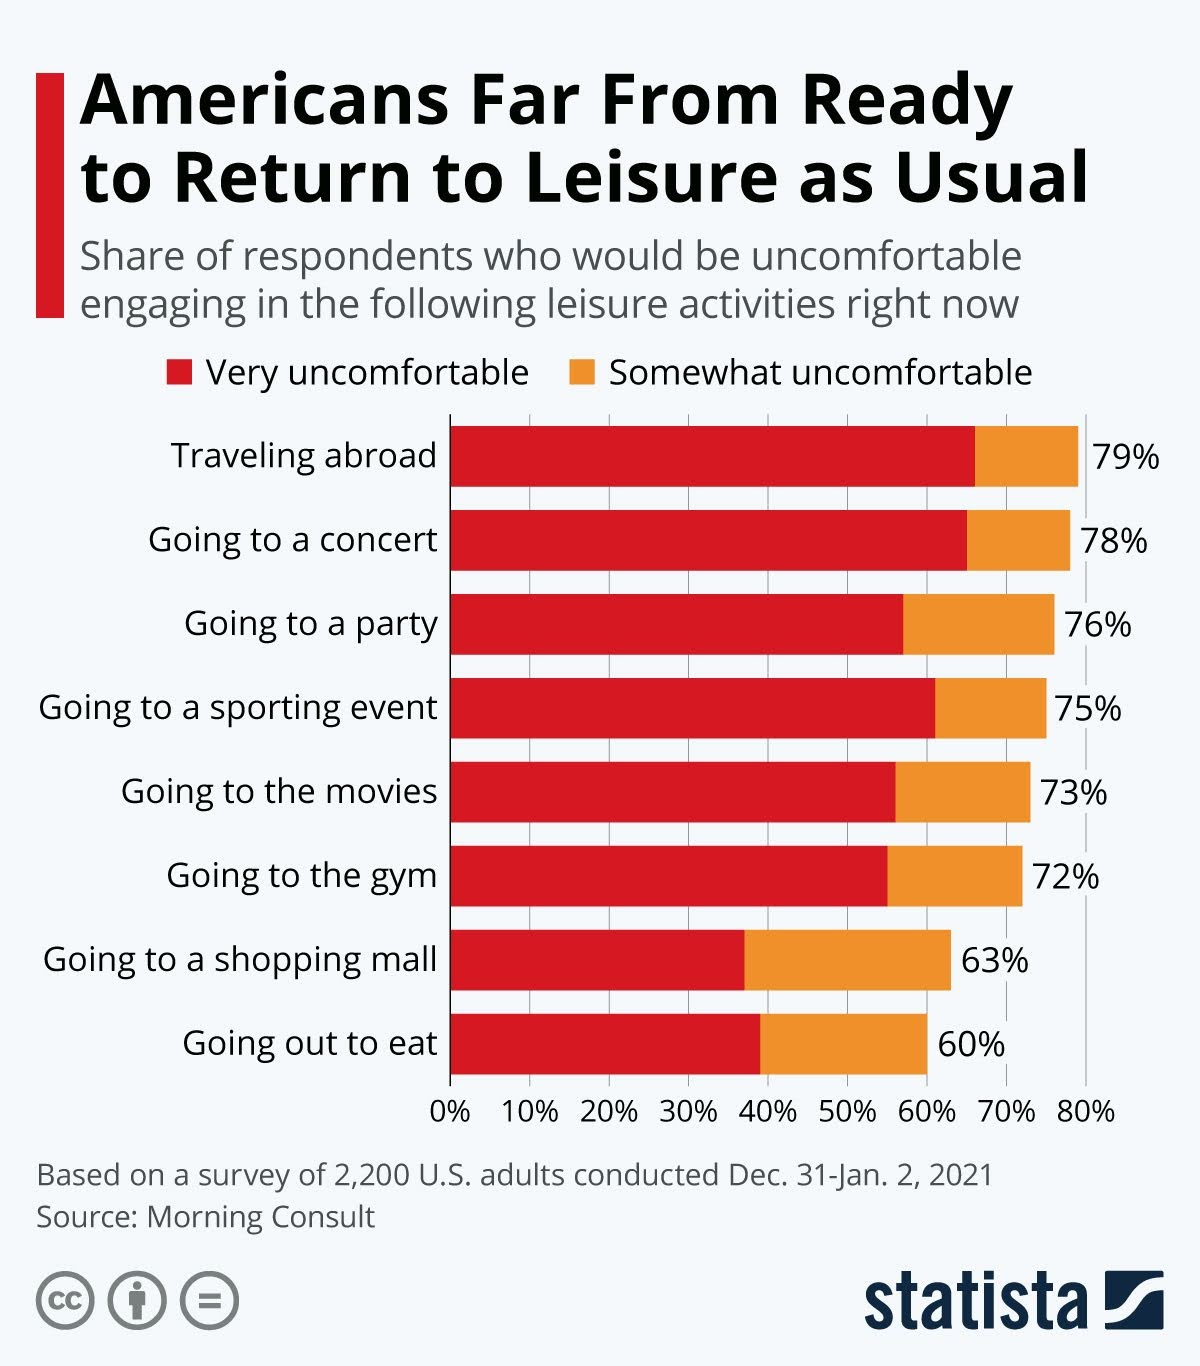 americans-far-from-ready-to-return-to-leisure-as-usual-infographic